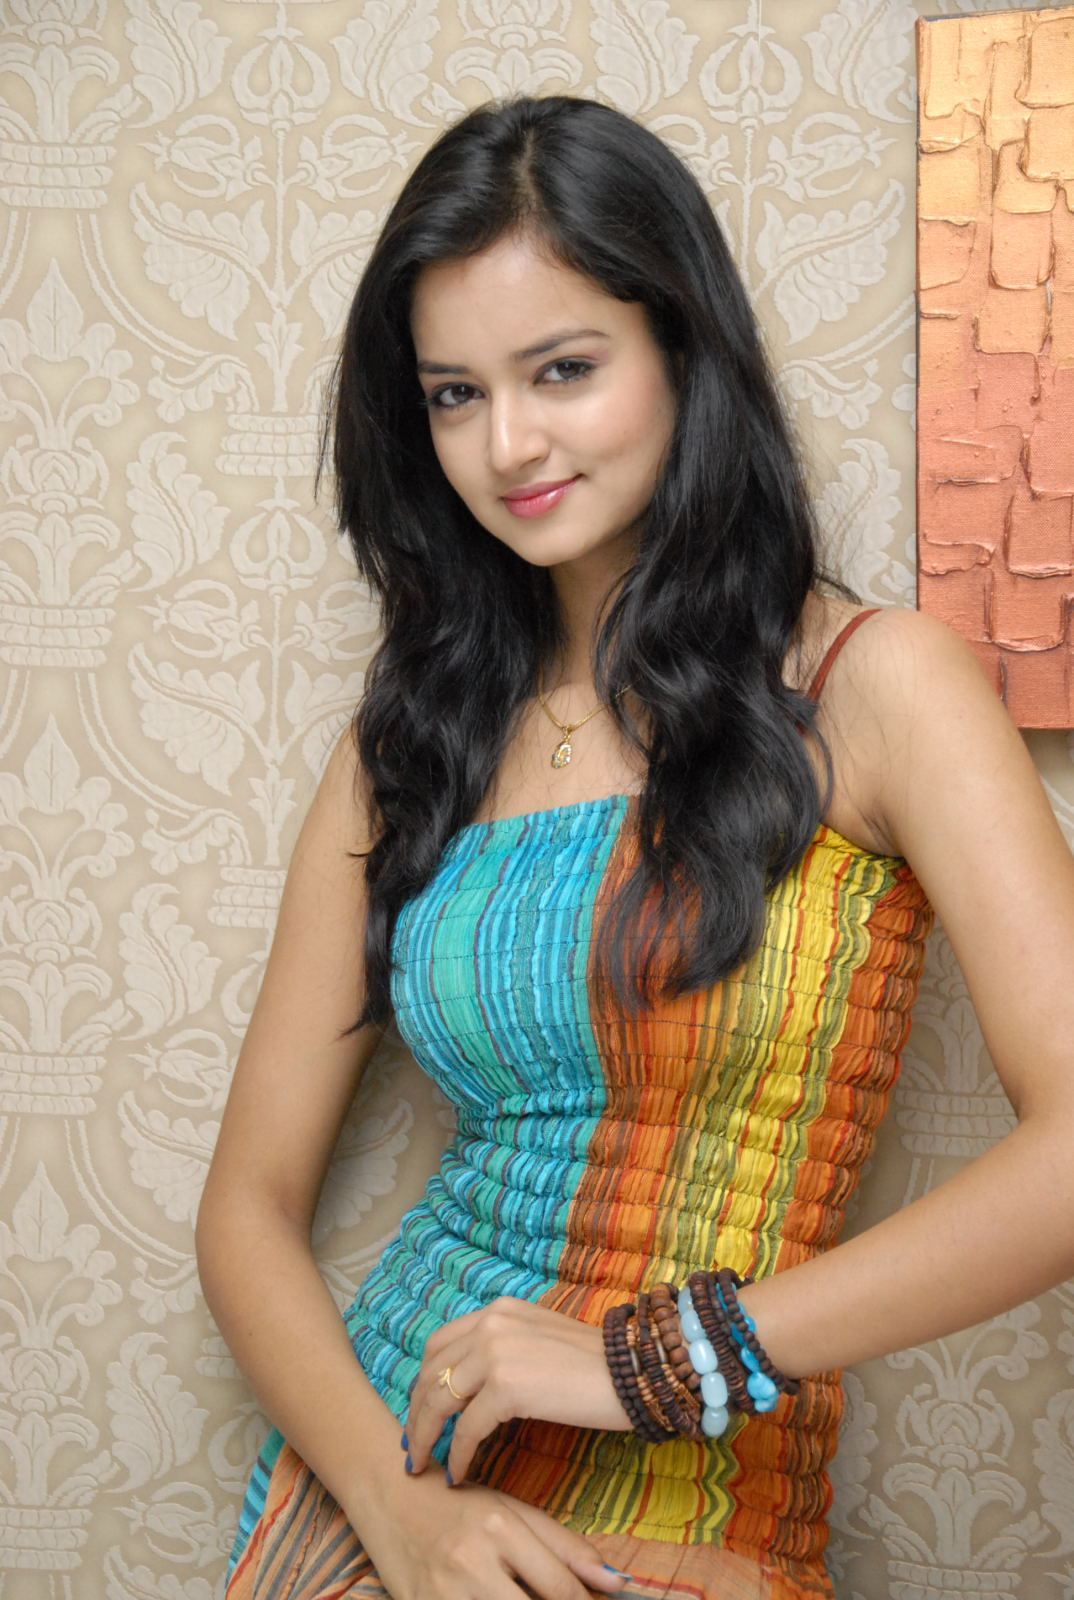 ...http://cutefunnystuff.blogspot.com/2012/06/cute-indian-actress-sanvi-beautiful.html.